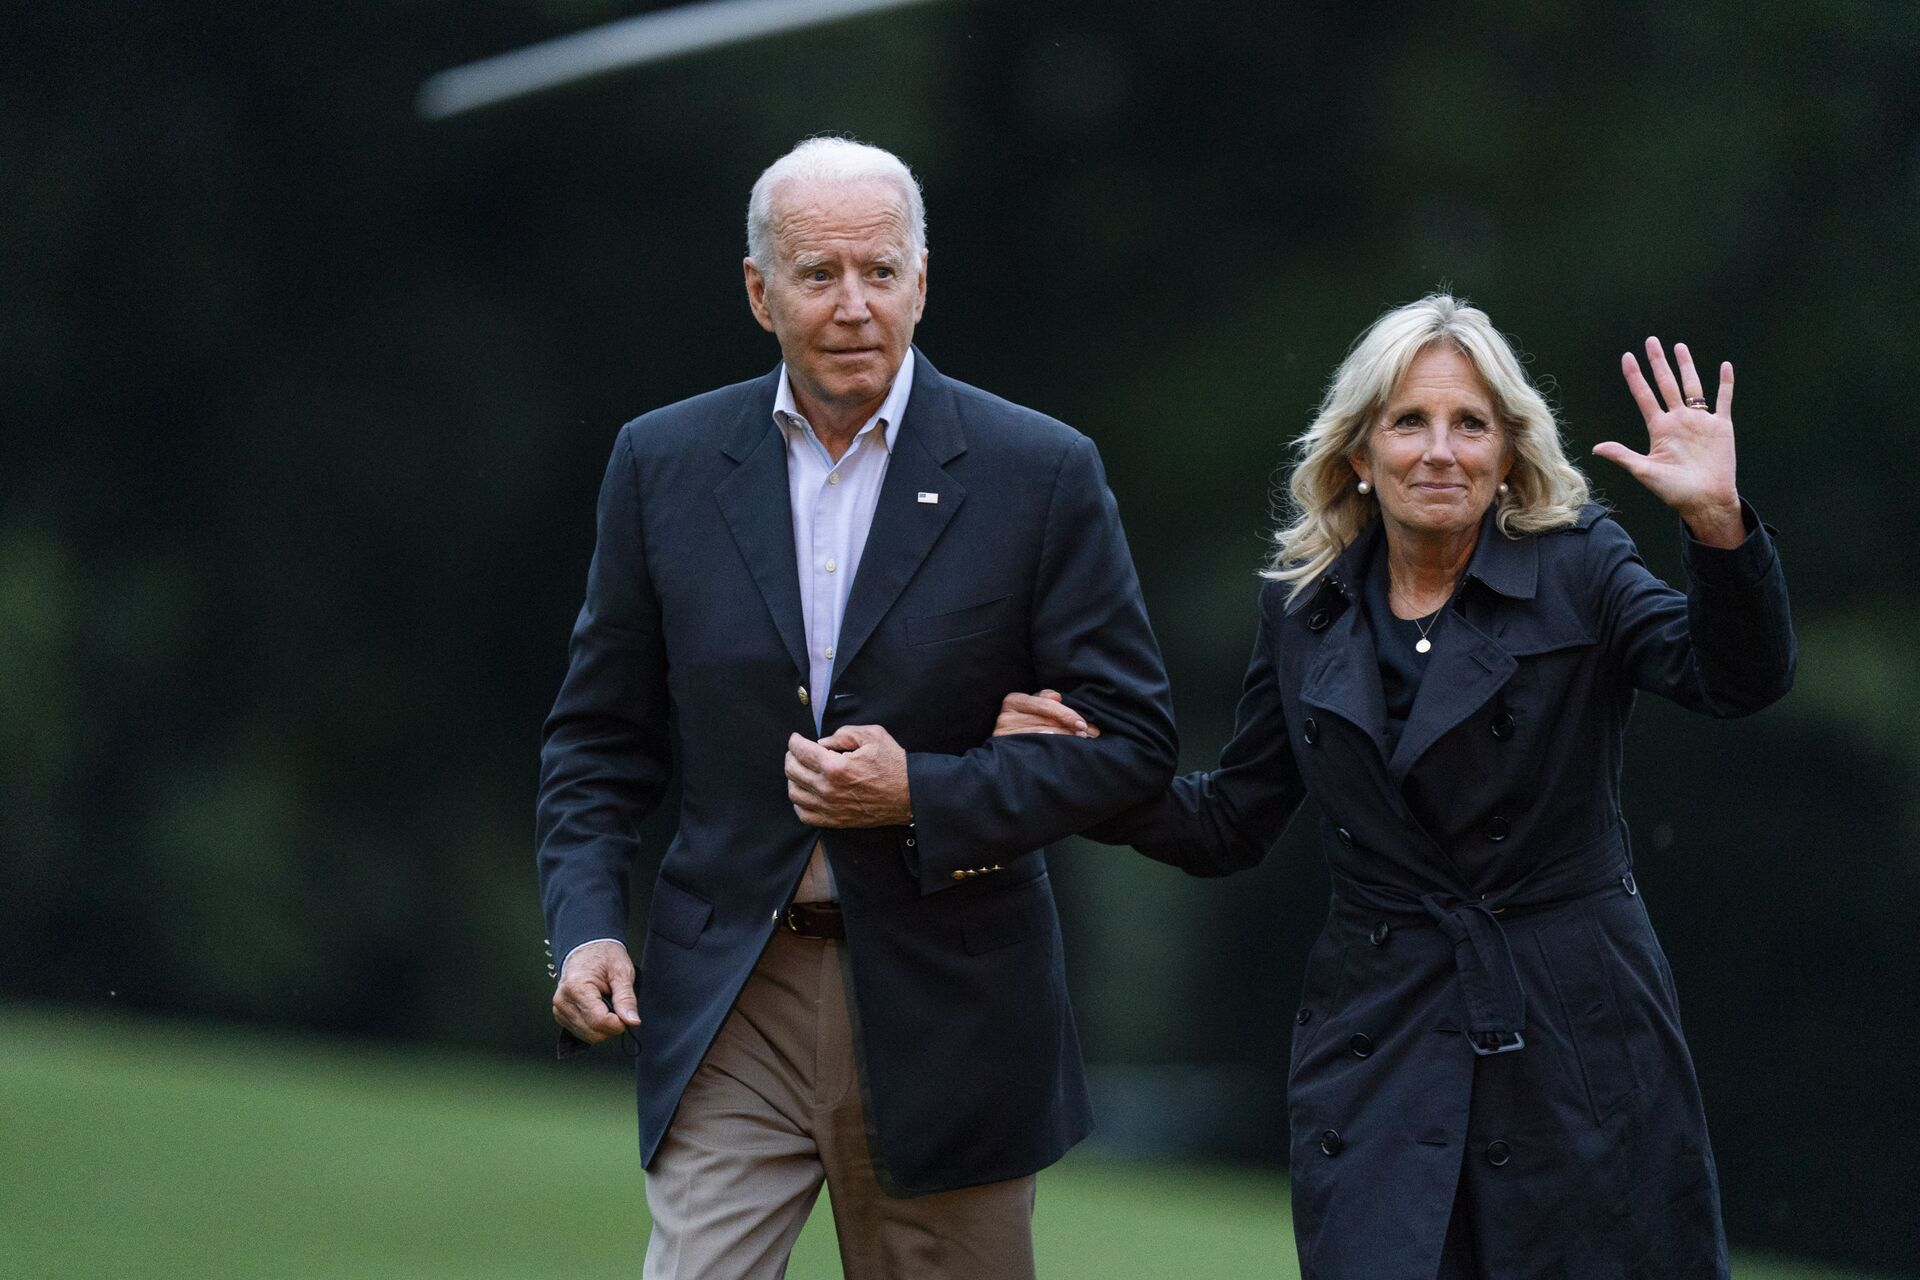 President Joe Biden with first lady Jill Biden returns to the the White House in Washington, Thursday, July 1, 2021, from a trip to Florida where he met with first responders and family members from condo tower in Surfside, Fla., that collapsed last week - Sputnik International, 1920, 07.09.2021